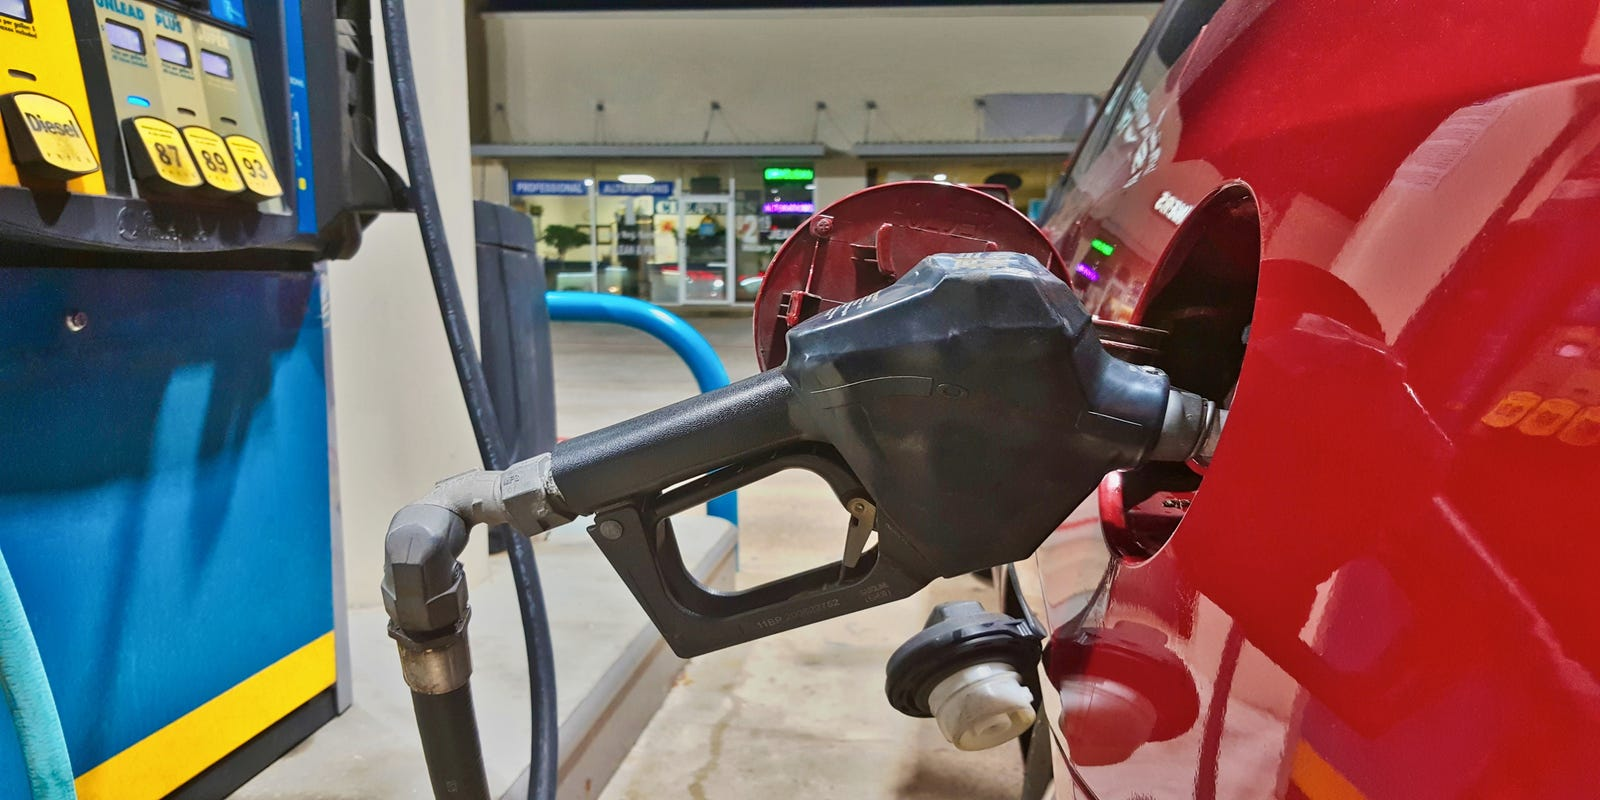 Michigan gas prices rise 17 cents in last week, AAA reports